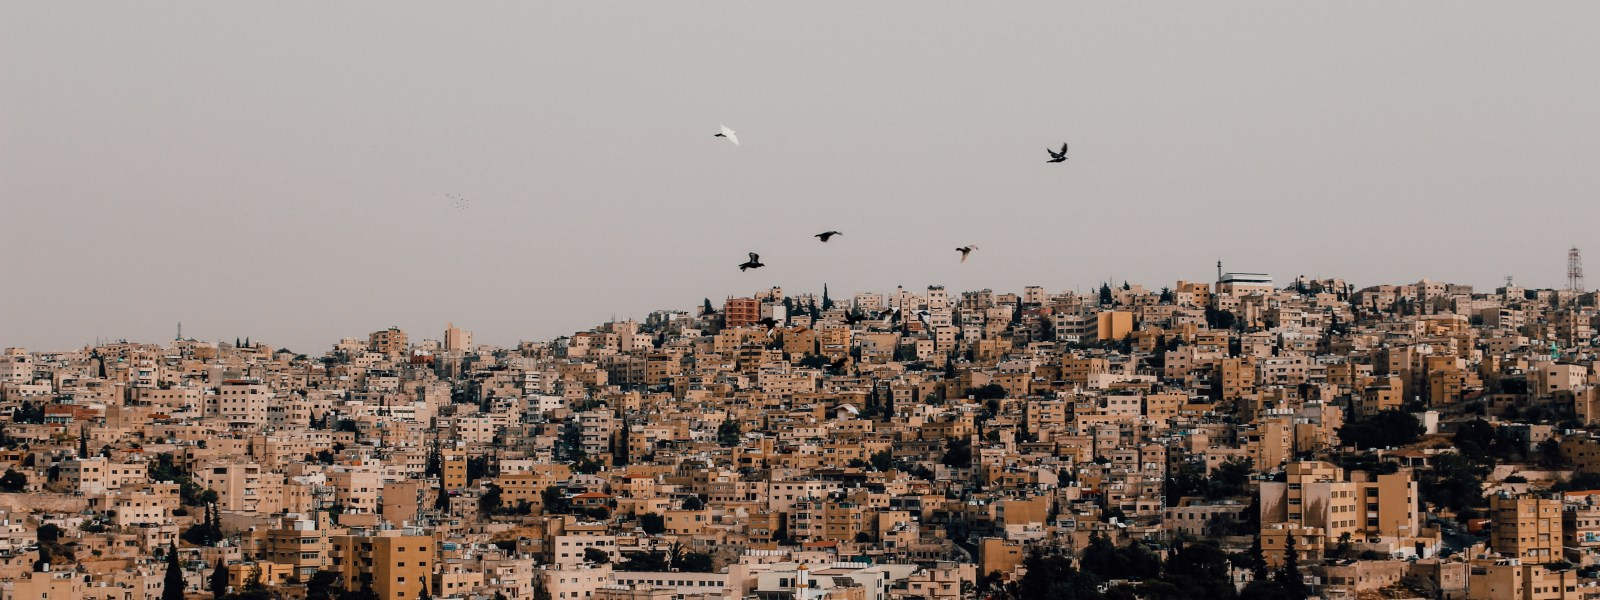 De must-do's in Amman